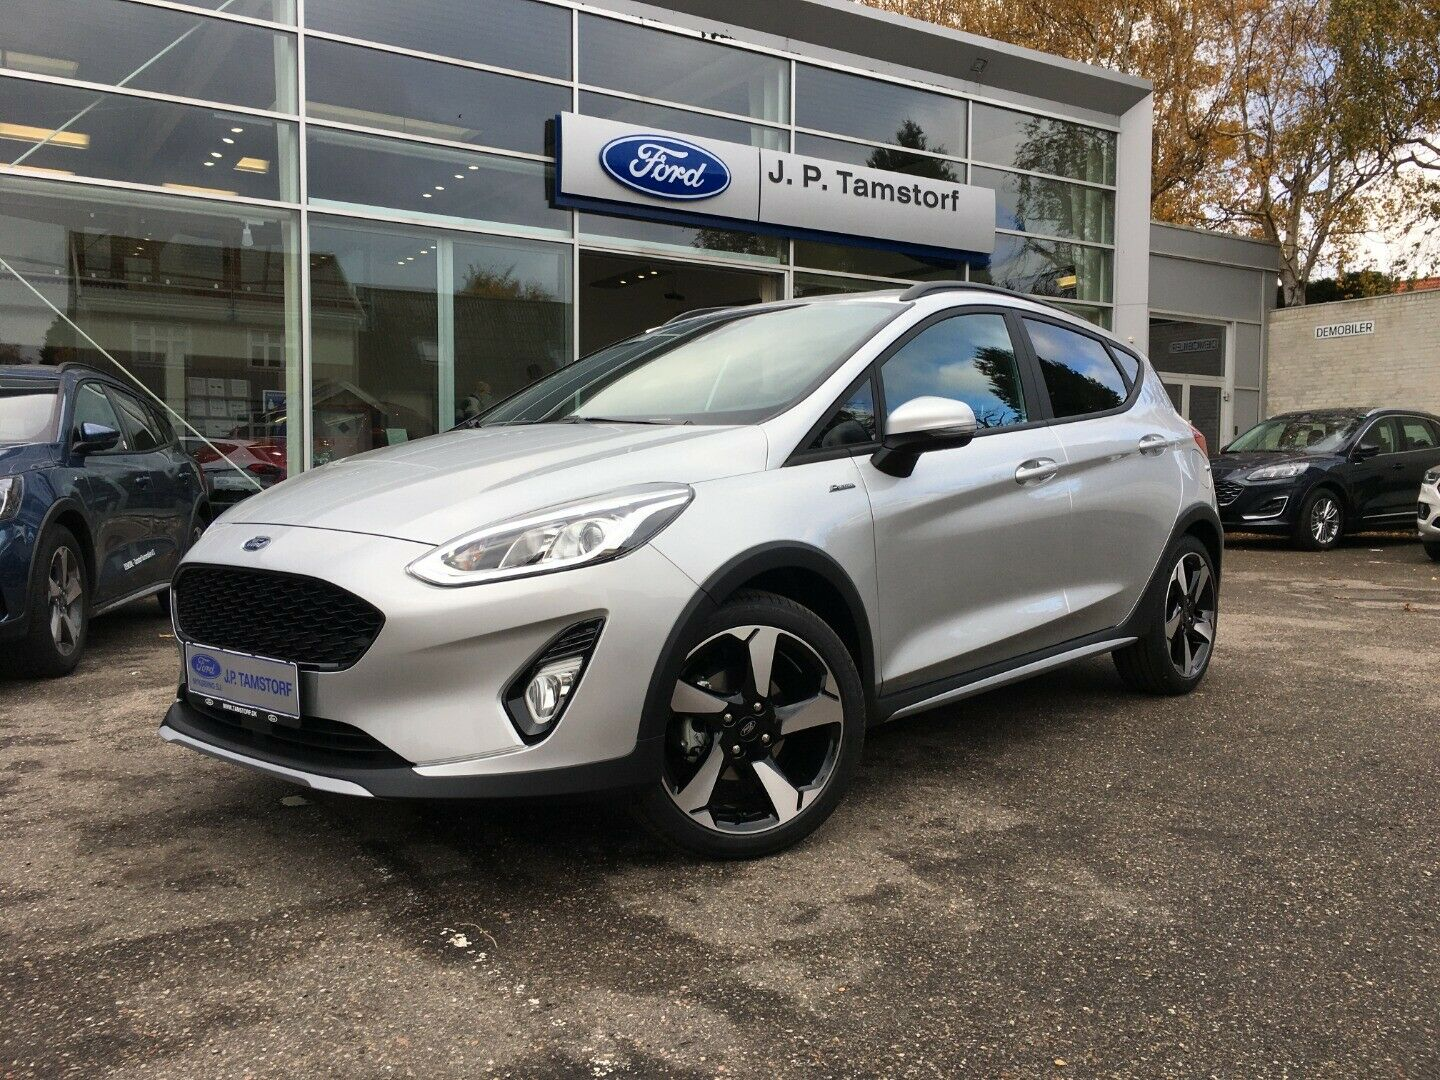 Ford Fiesta 1,0 EcoBoost mHEV Active X 5d - 189.900 kr.